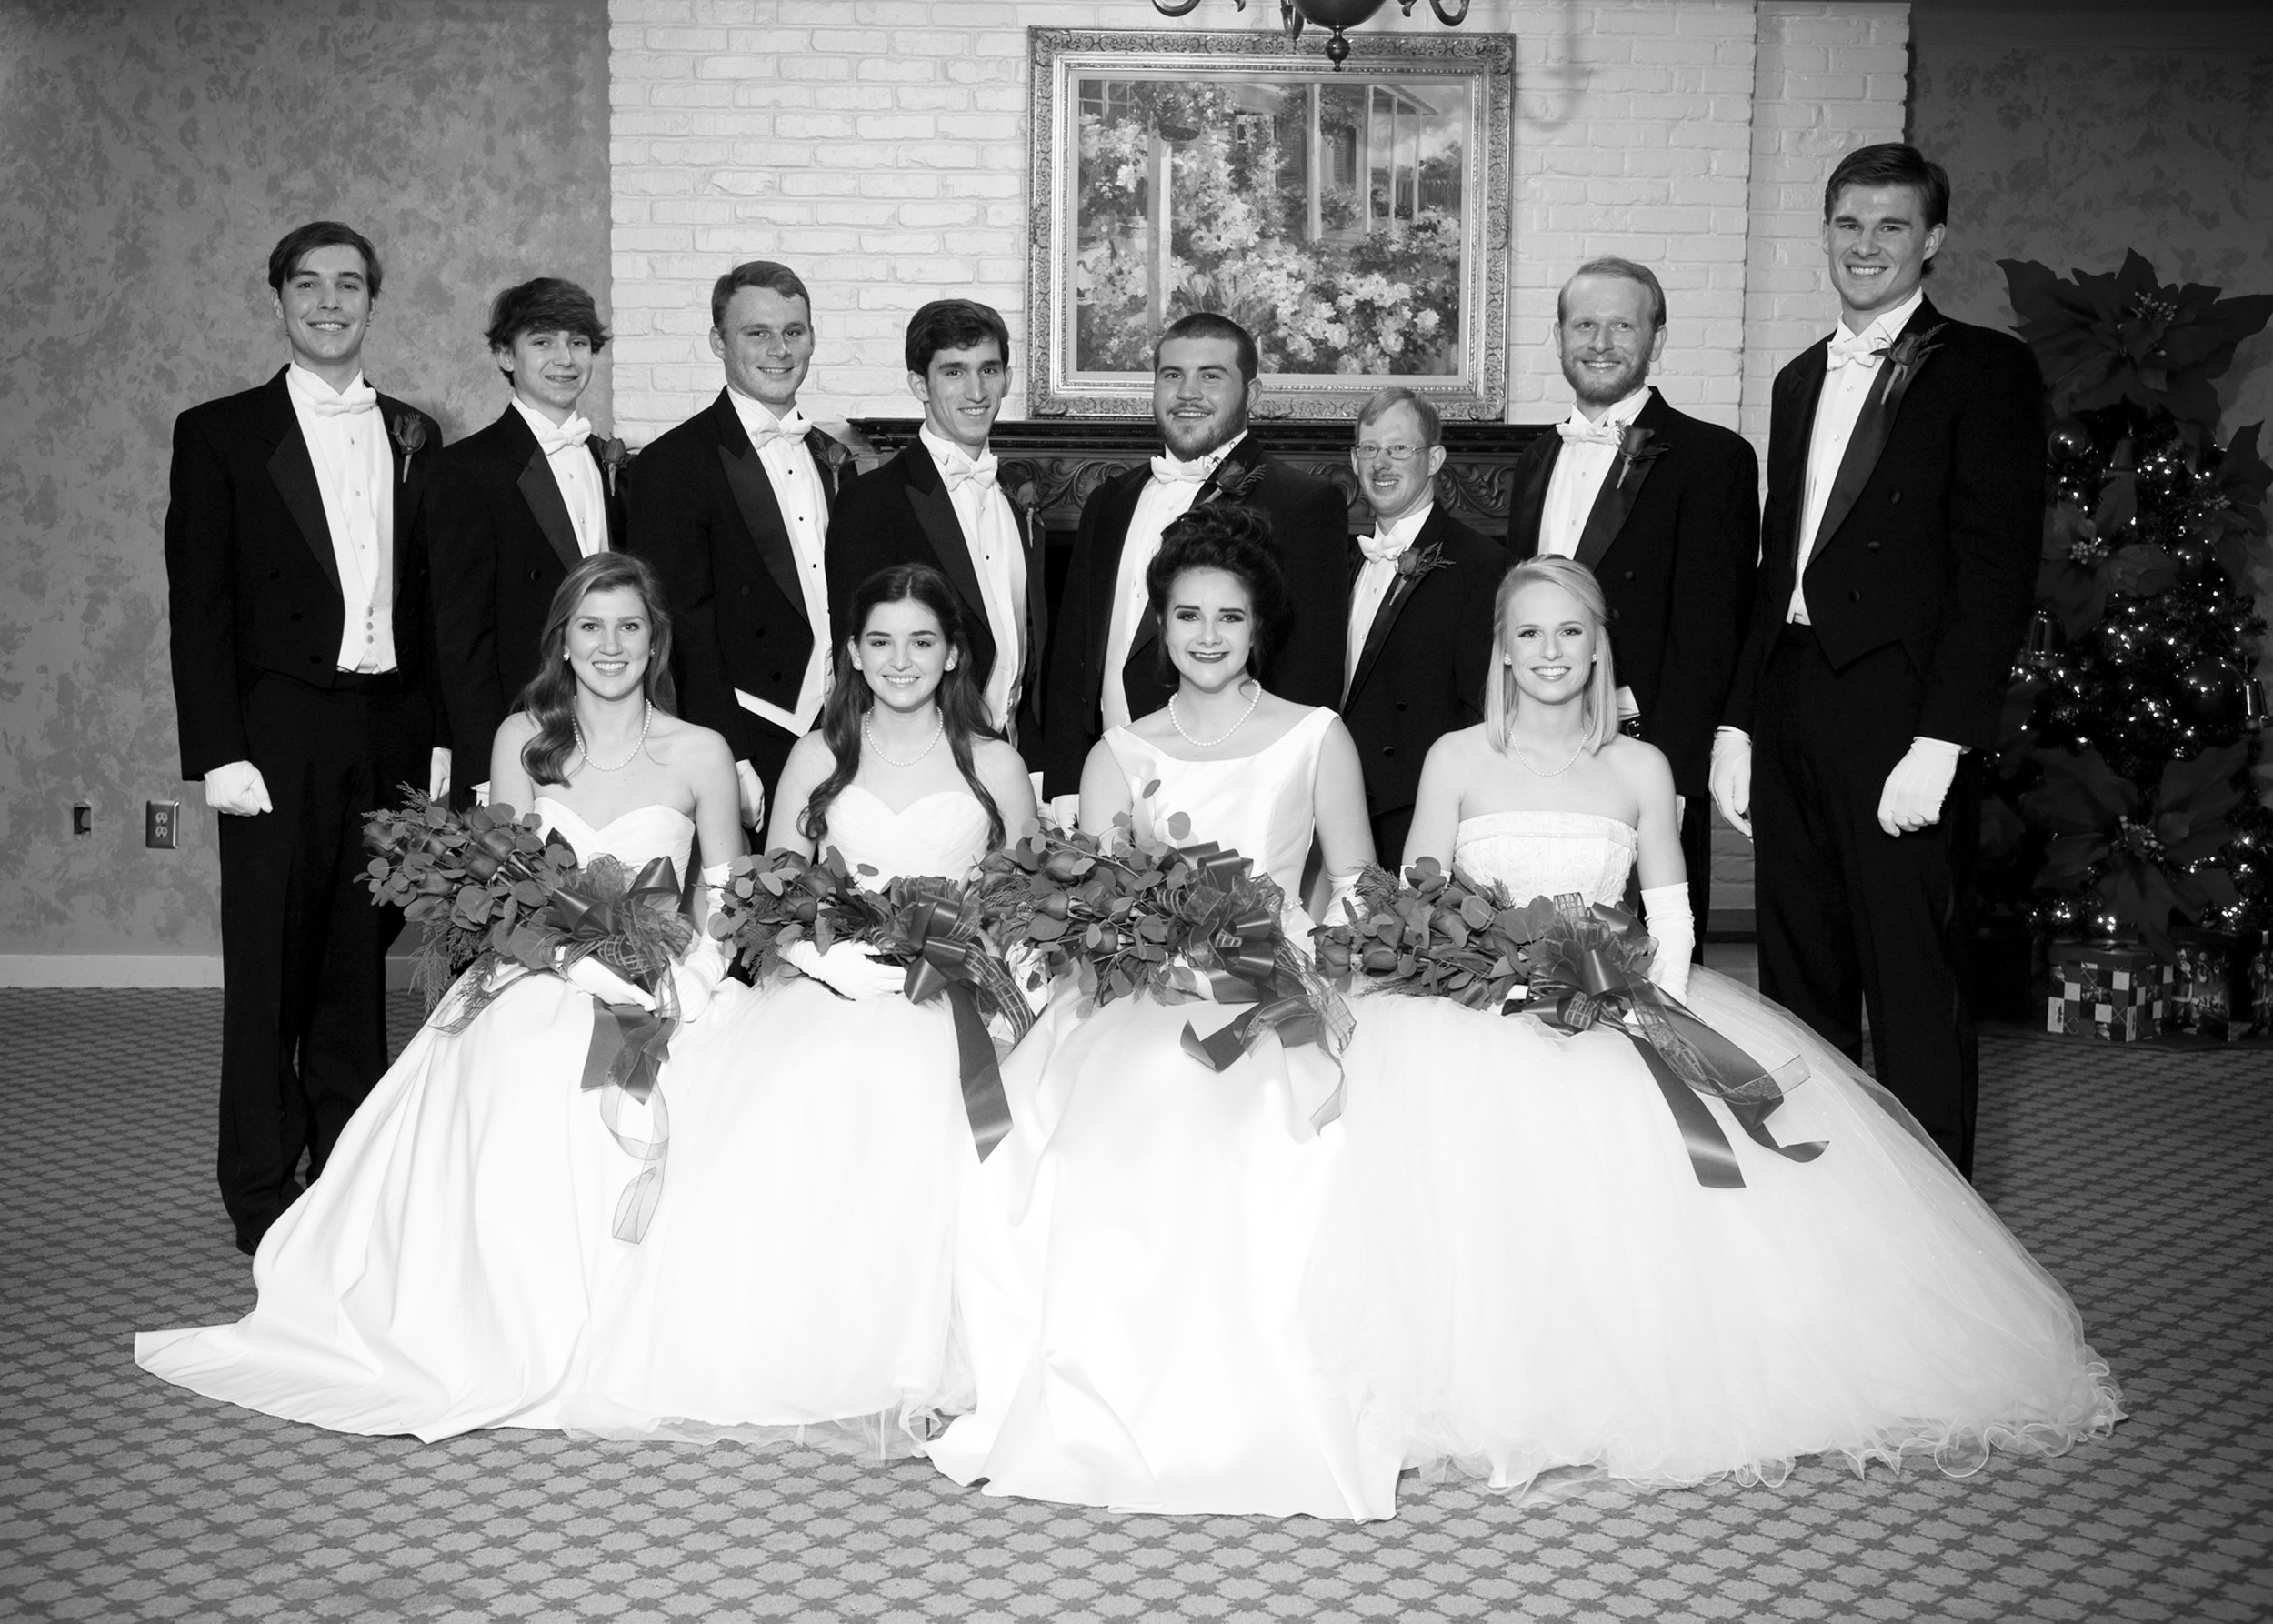 From left: front row, debutantes Elizabeth Rose Coffey, Mary Geer Kirkland, Mackenzie Elaine Ham and Eadon Kressly Moody; and back row, escorts William Columbus Coffey IV, Reid Foster Darby, Bailey Henry Kirkland, Kenneth Reaves Wannamaker, Tyler Watson Baker, Lane Olin Ham, Robert McFaddin Moody and Troy Ingram Clifford.